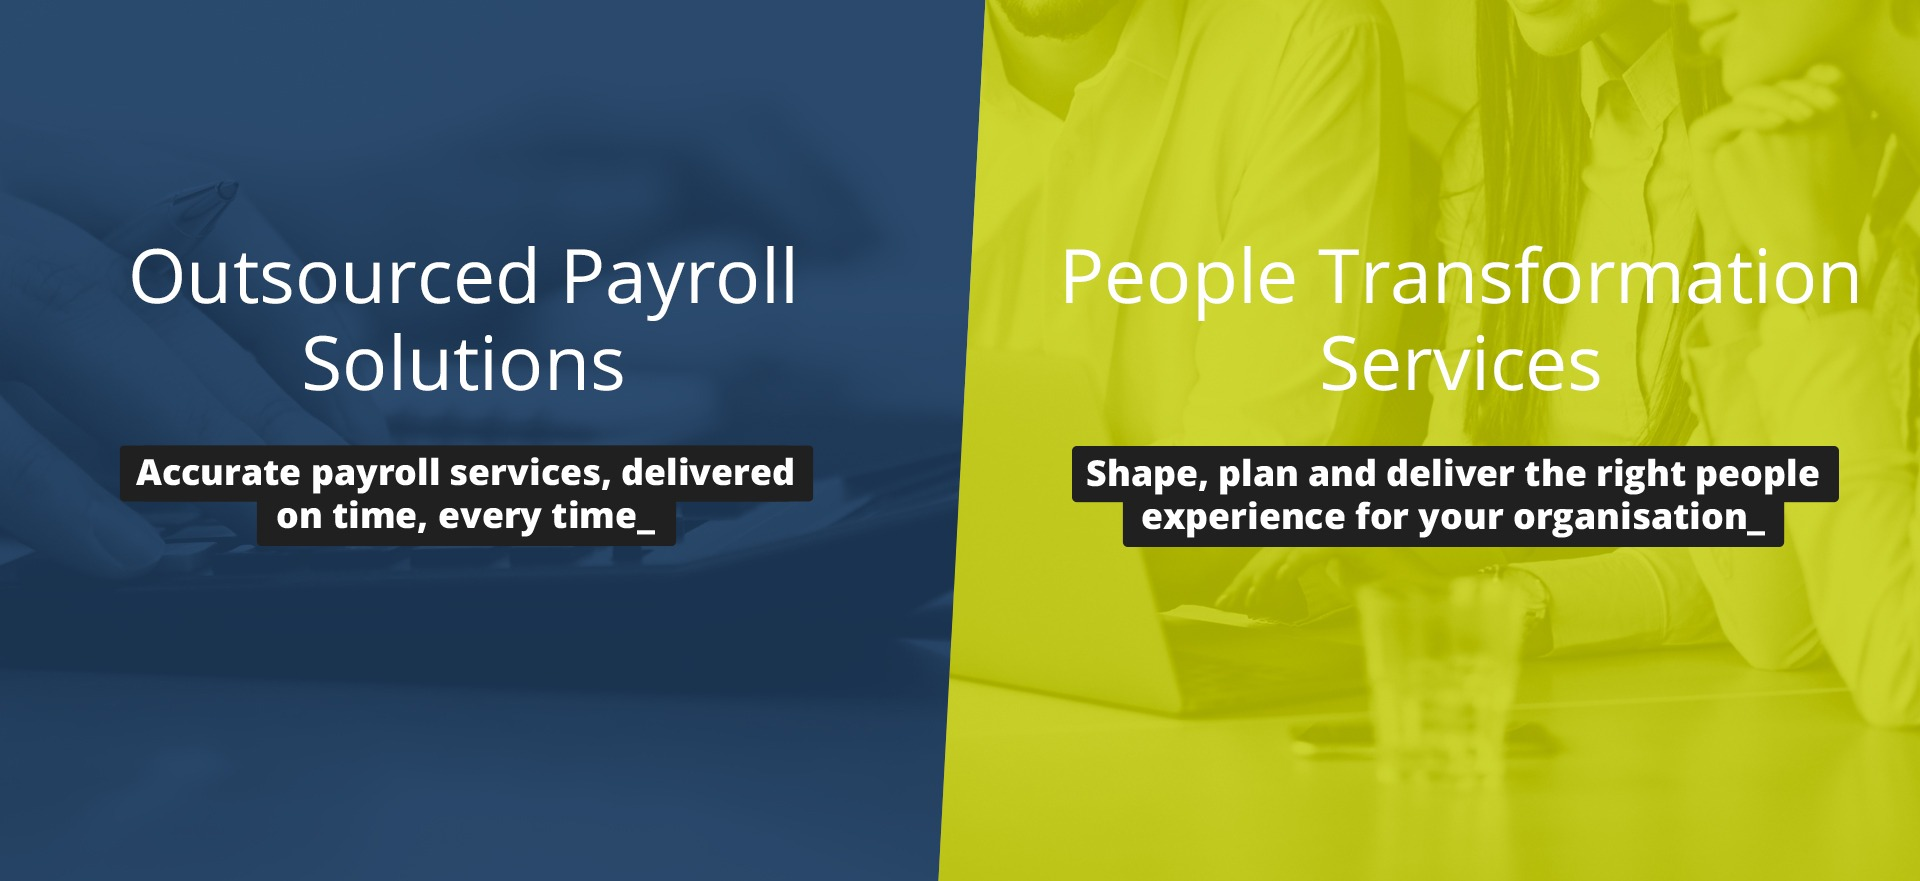 CE Back Office - People Transformation & Payroll Services